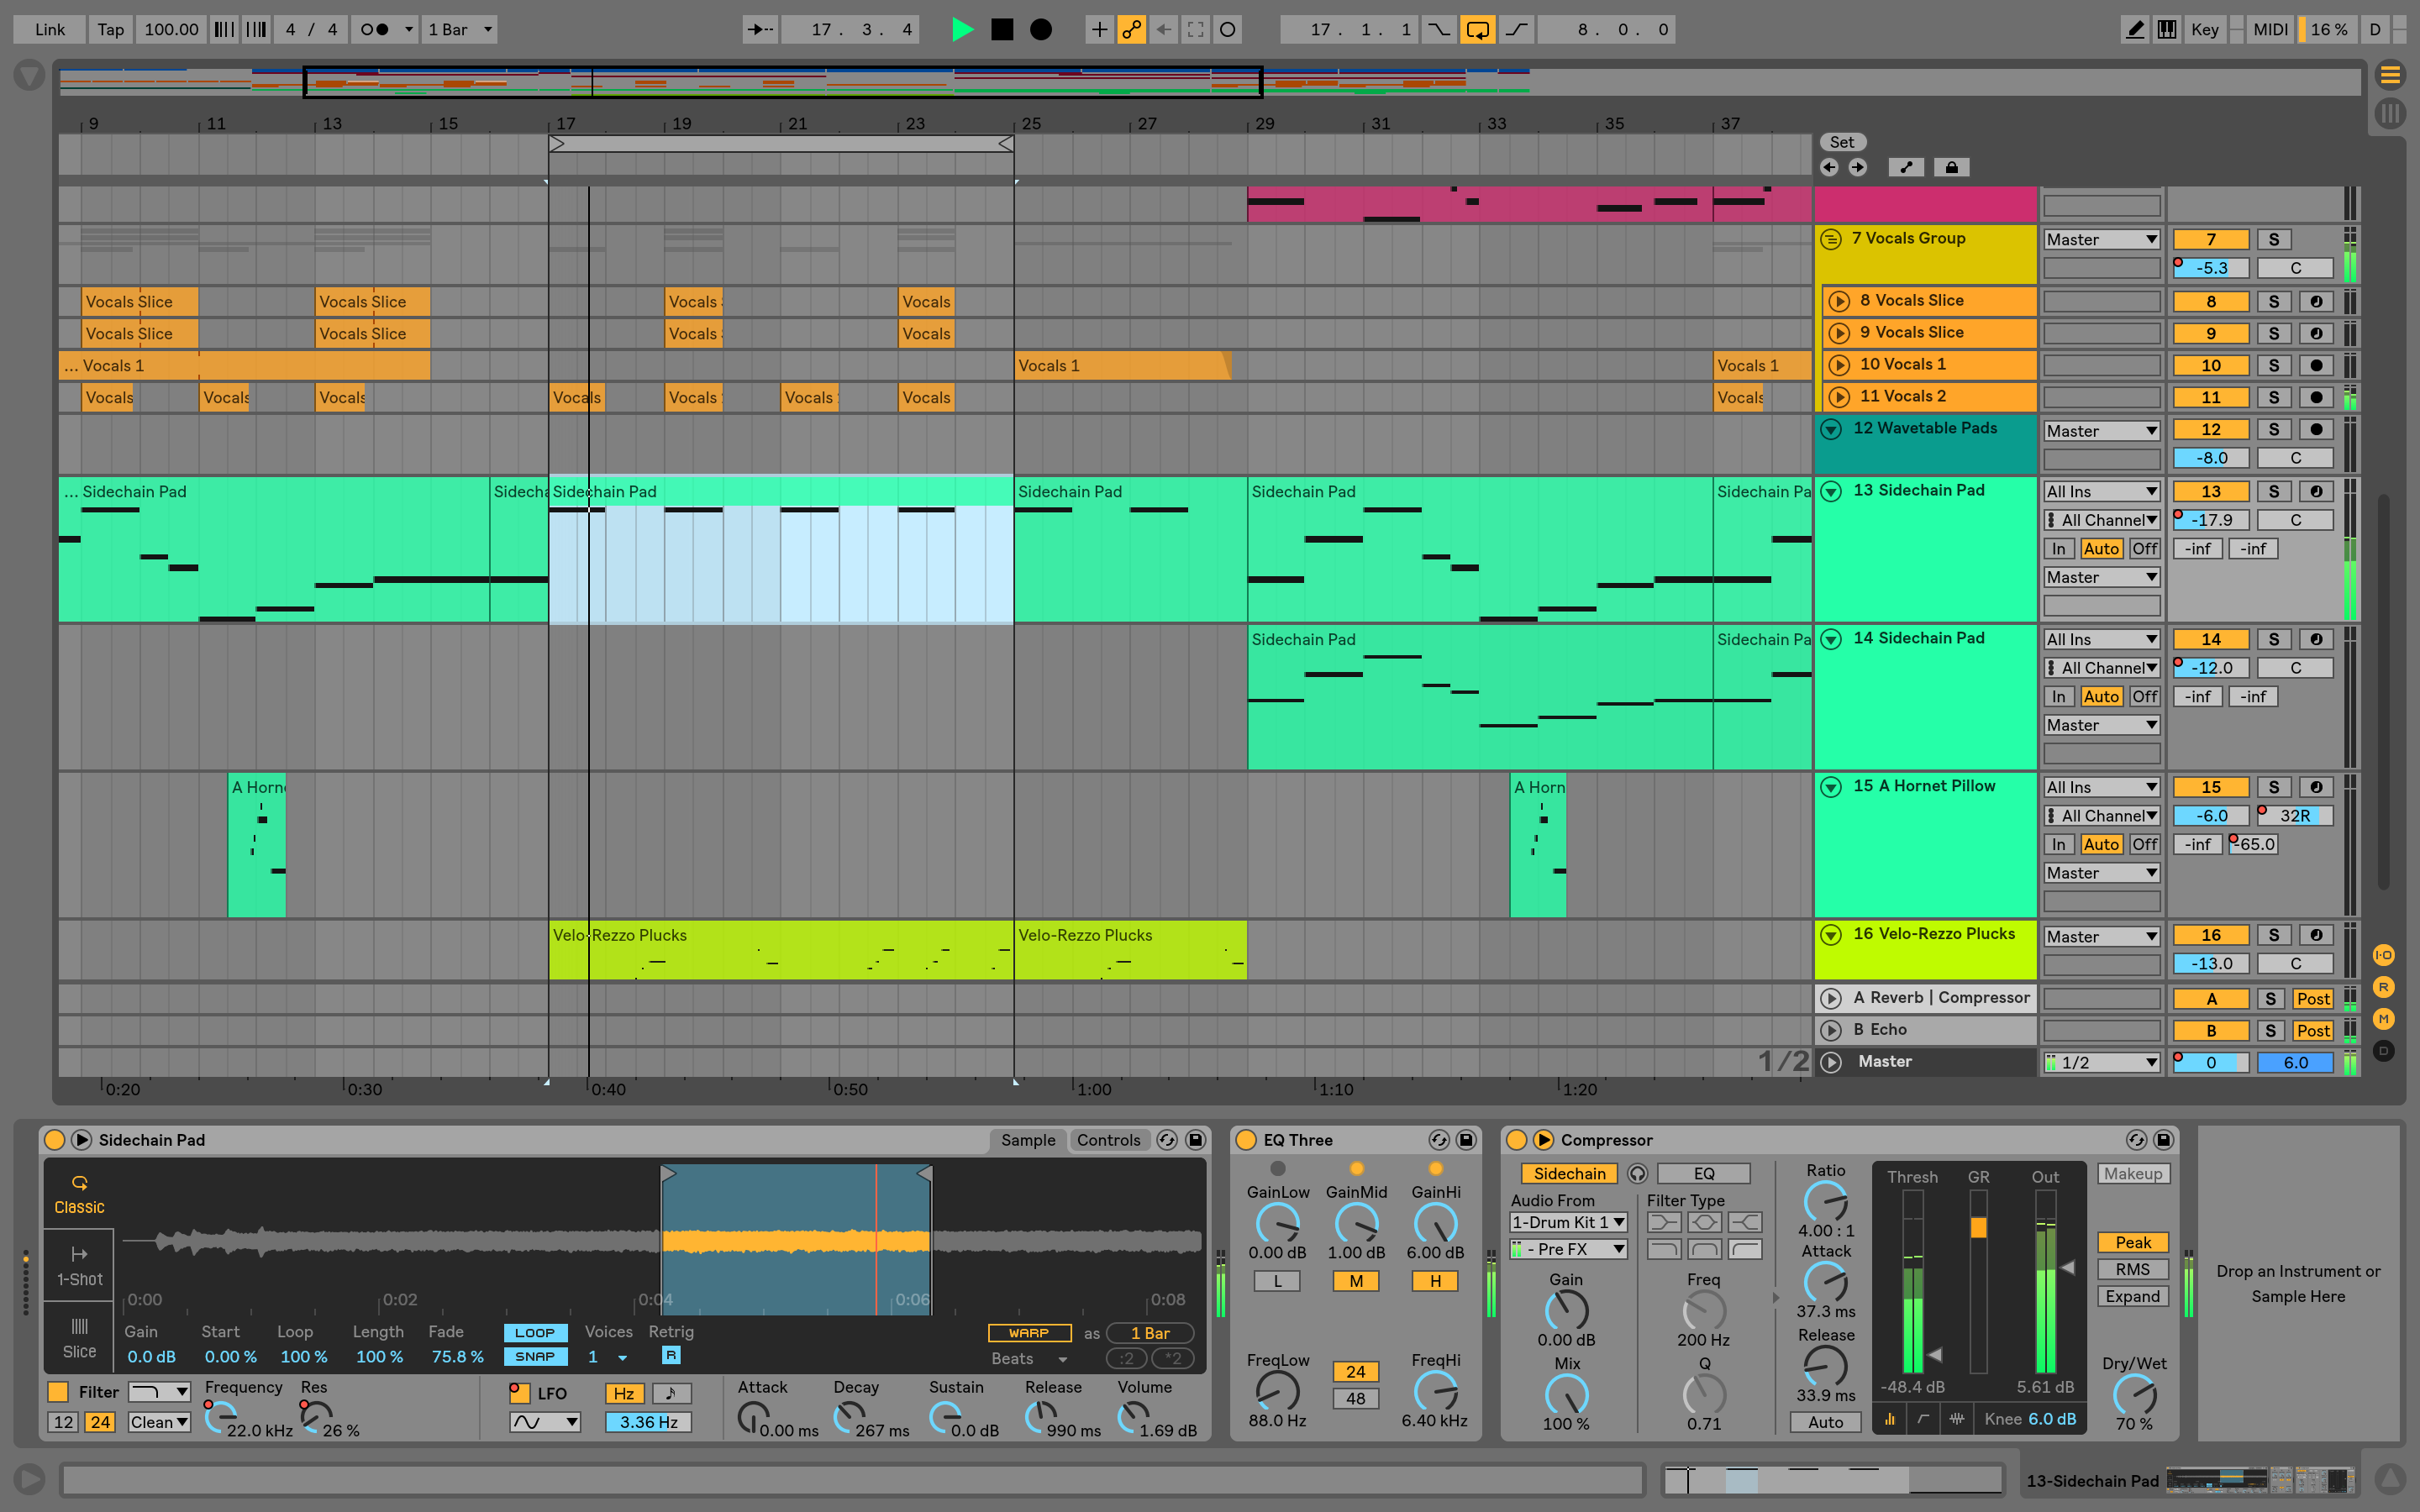 What are the limitations of Ableton Live lite? - Quora